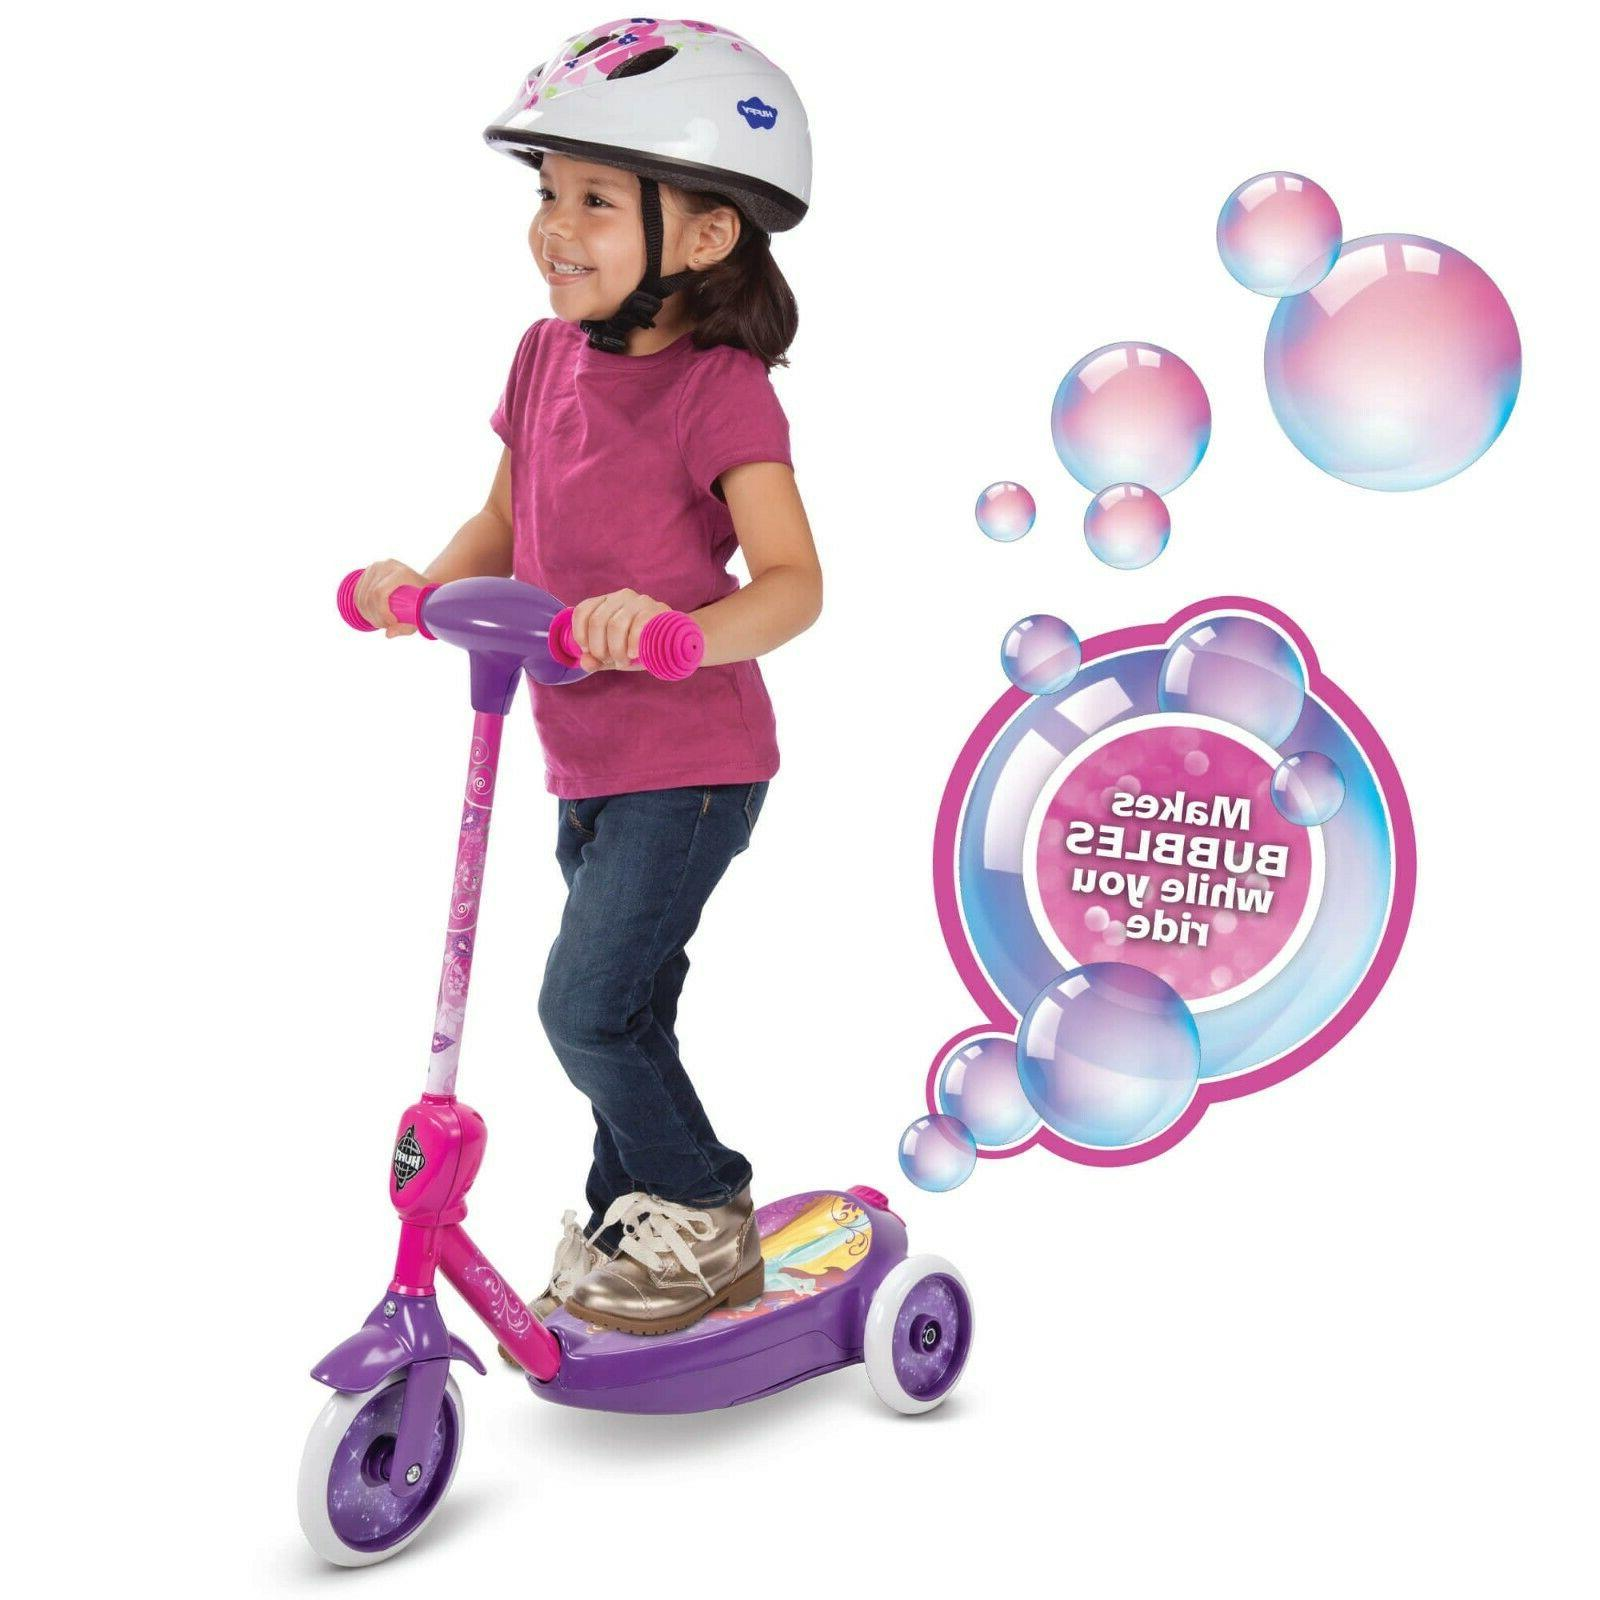 3-Wheel Ride-On Toys Scooter Fun Play Pink